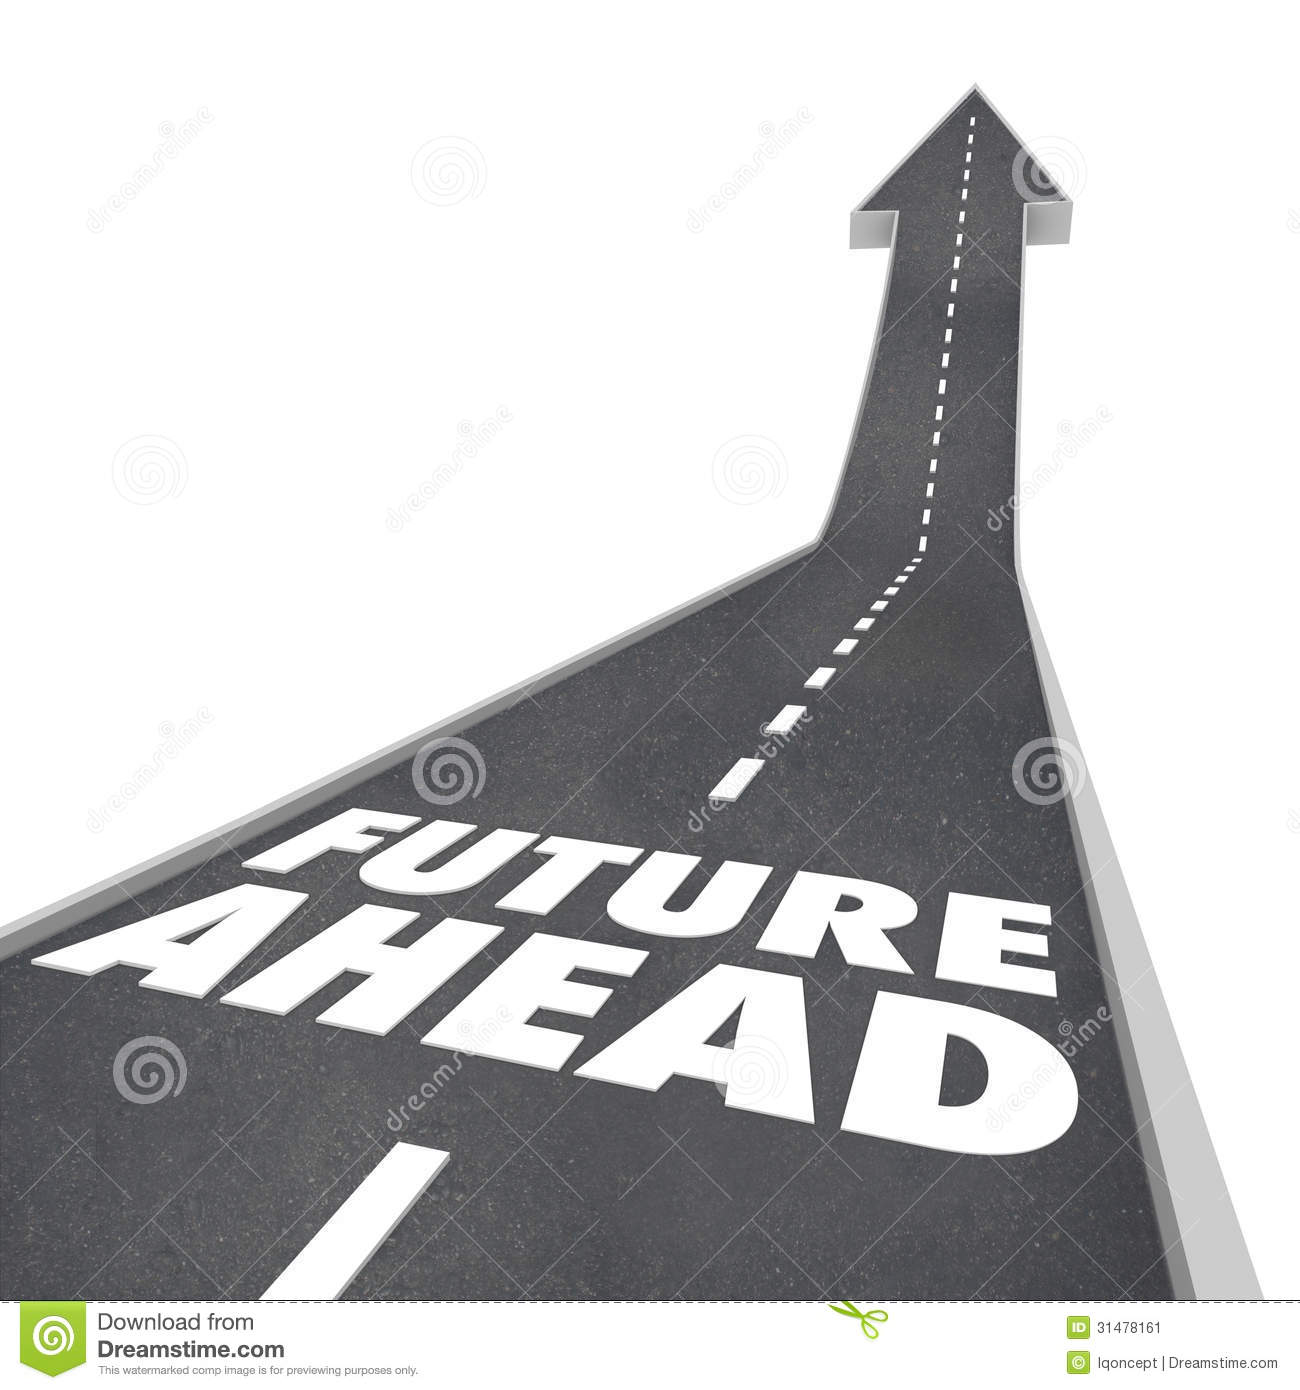 Road ahead clipart.